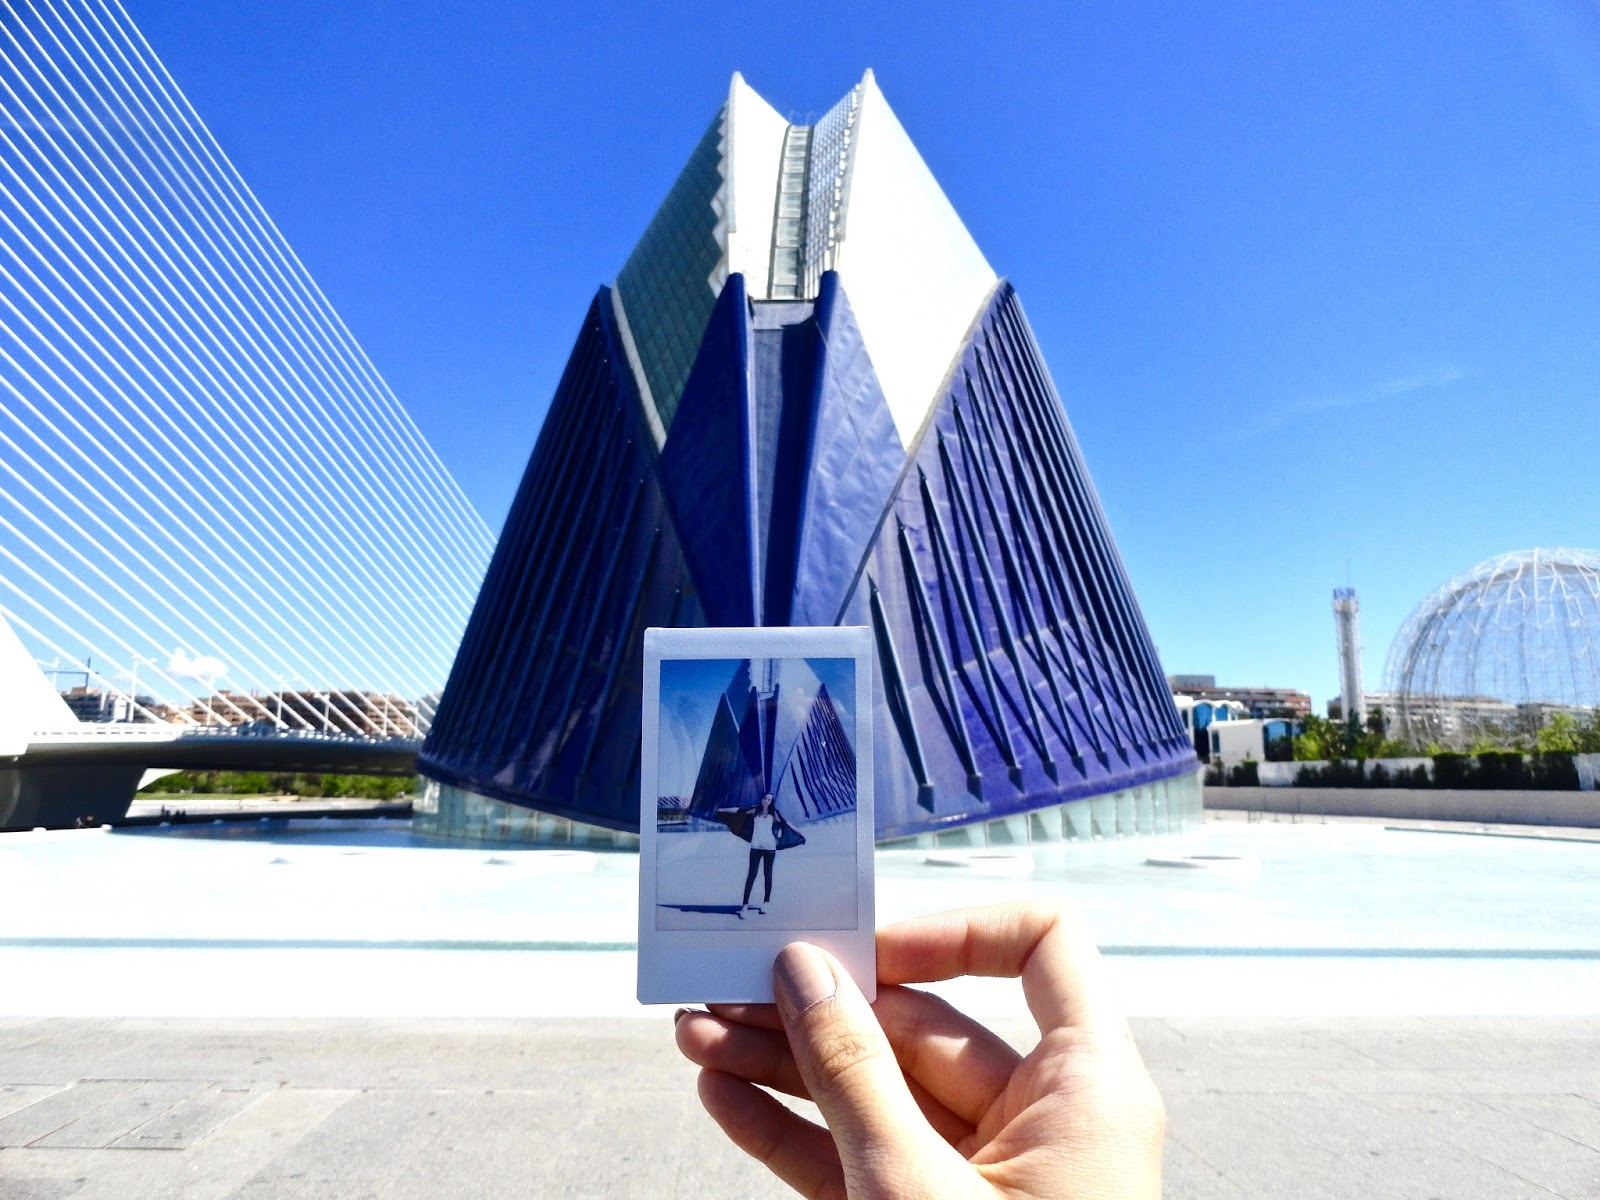 girl polaroid city of arts and science ciudad de las artes y las ciencias valencia spain